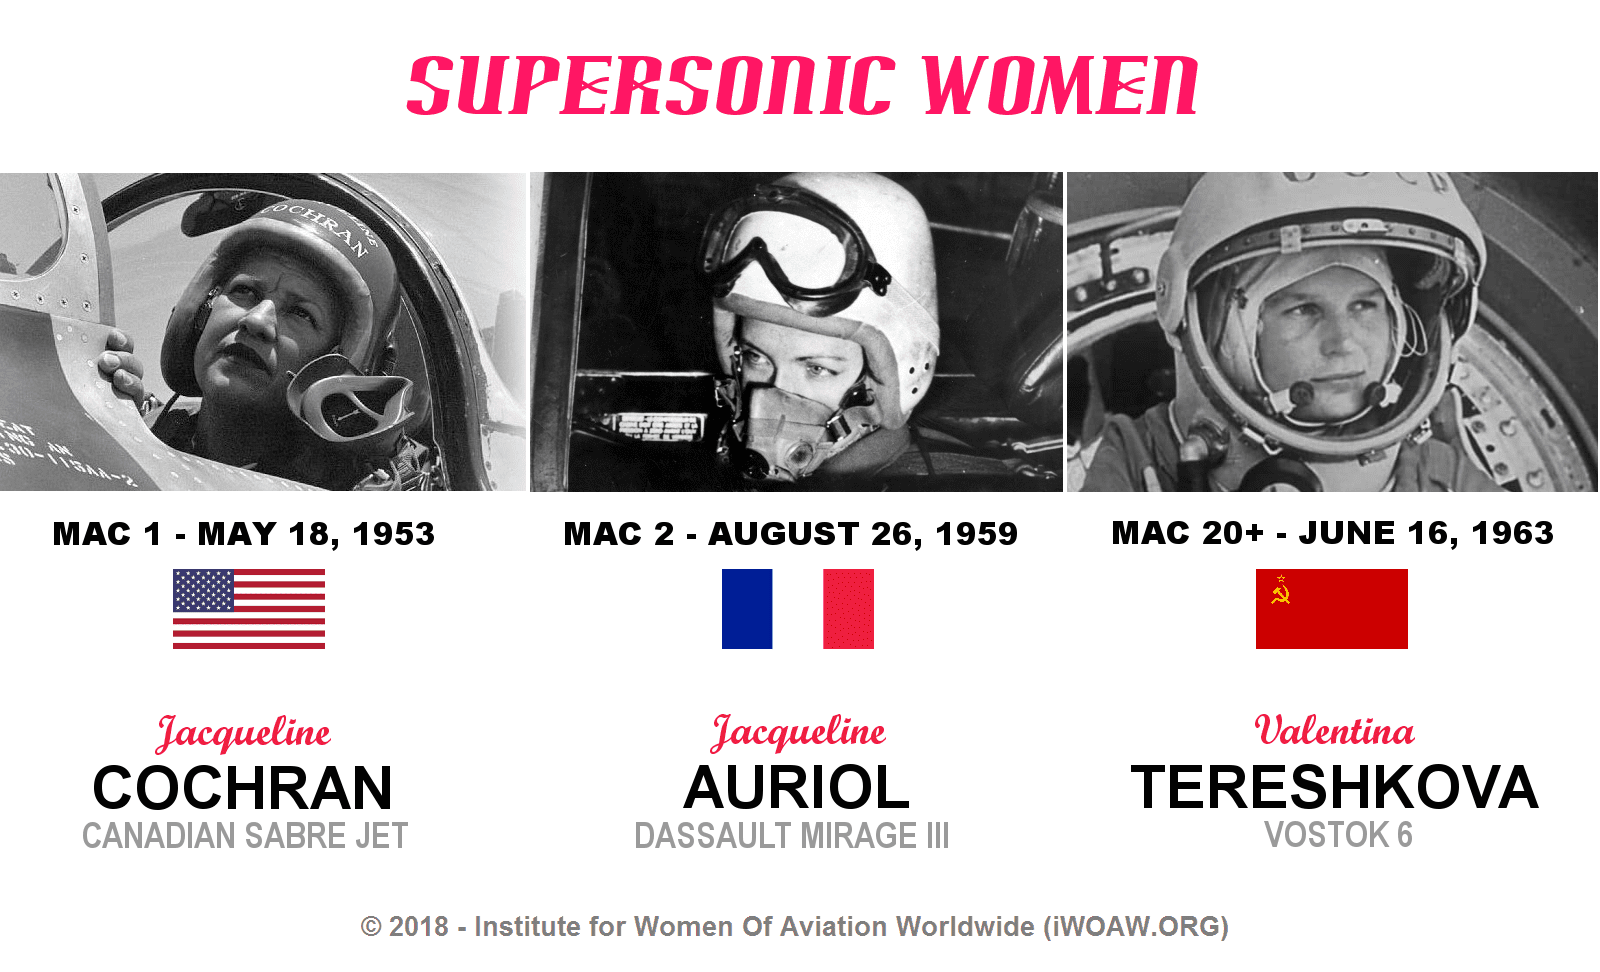 Supersonic women 1953-1963